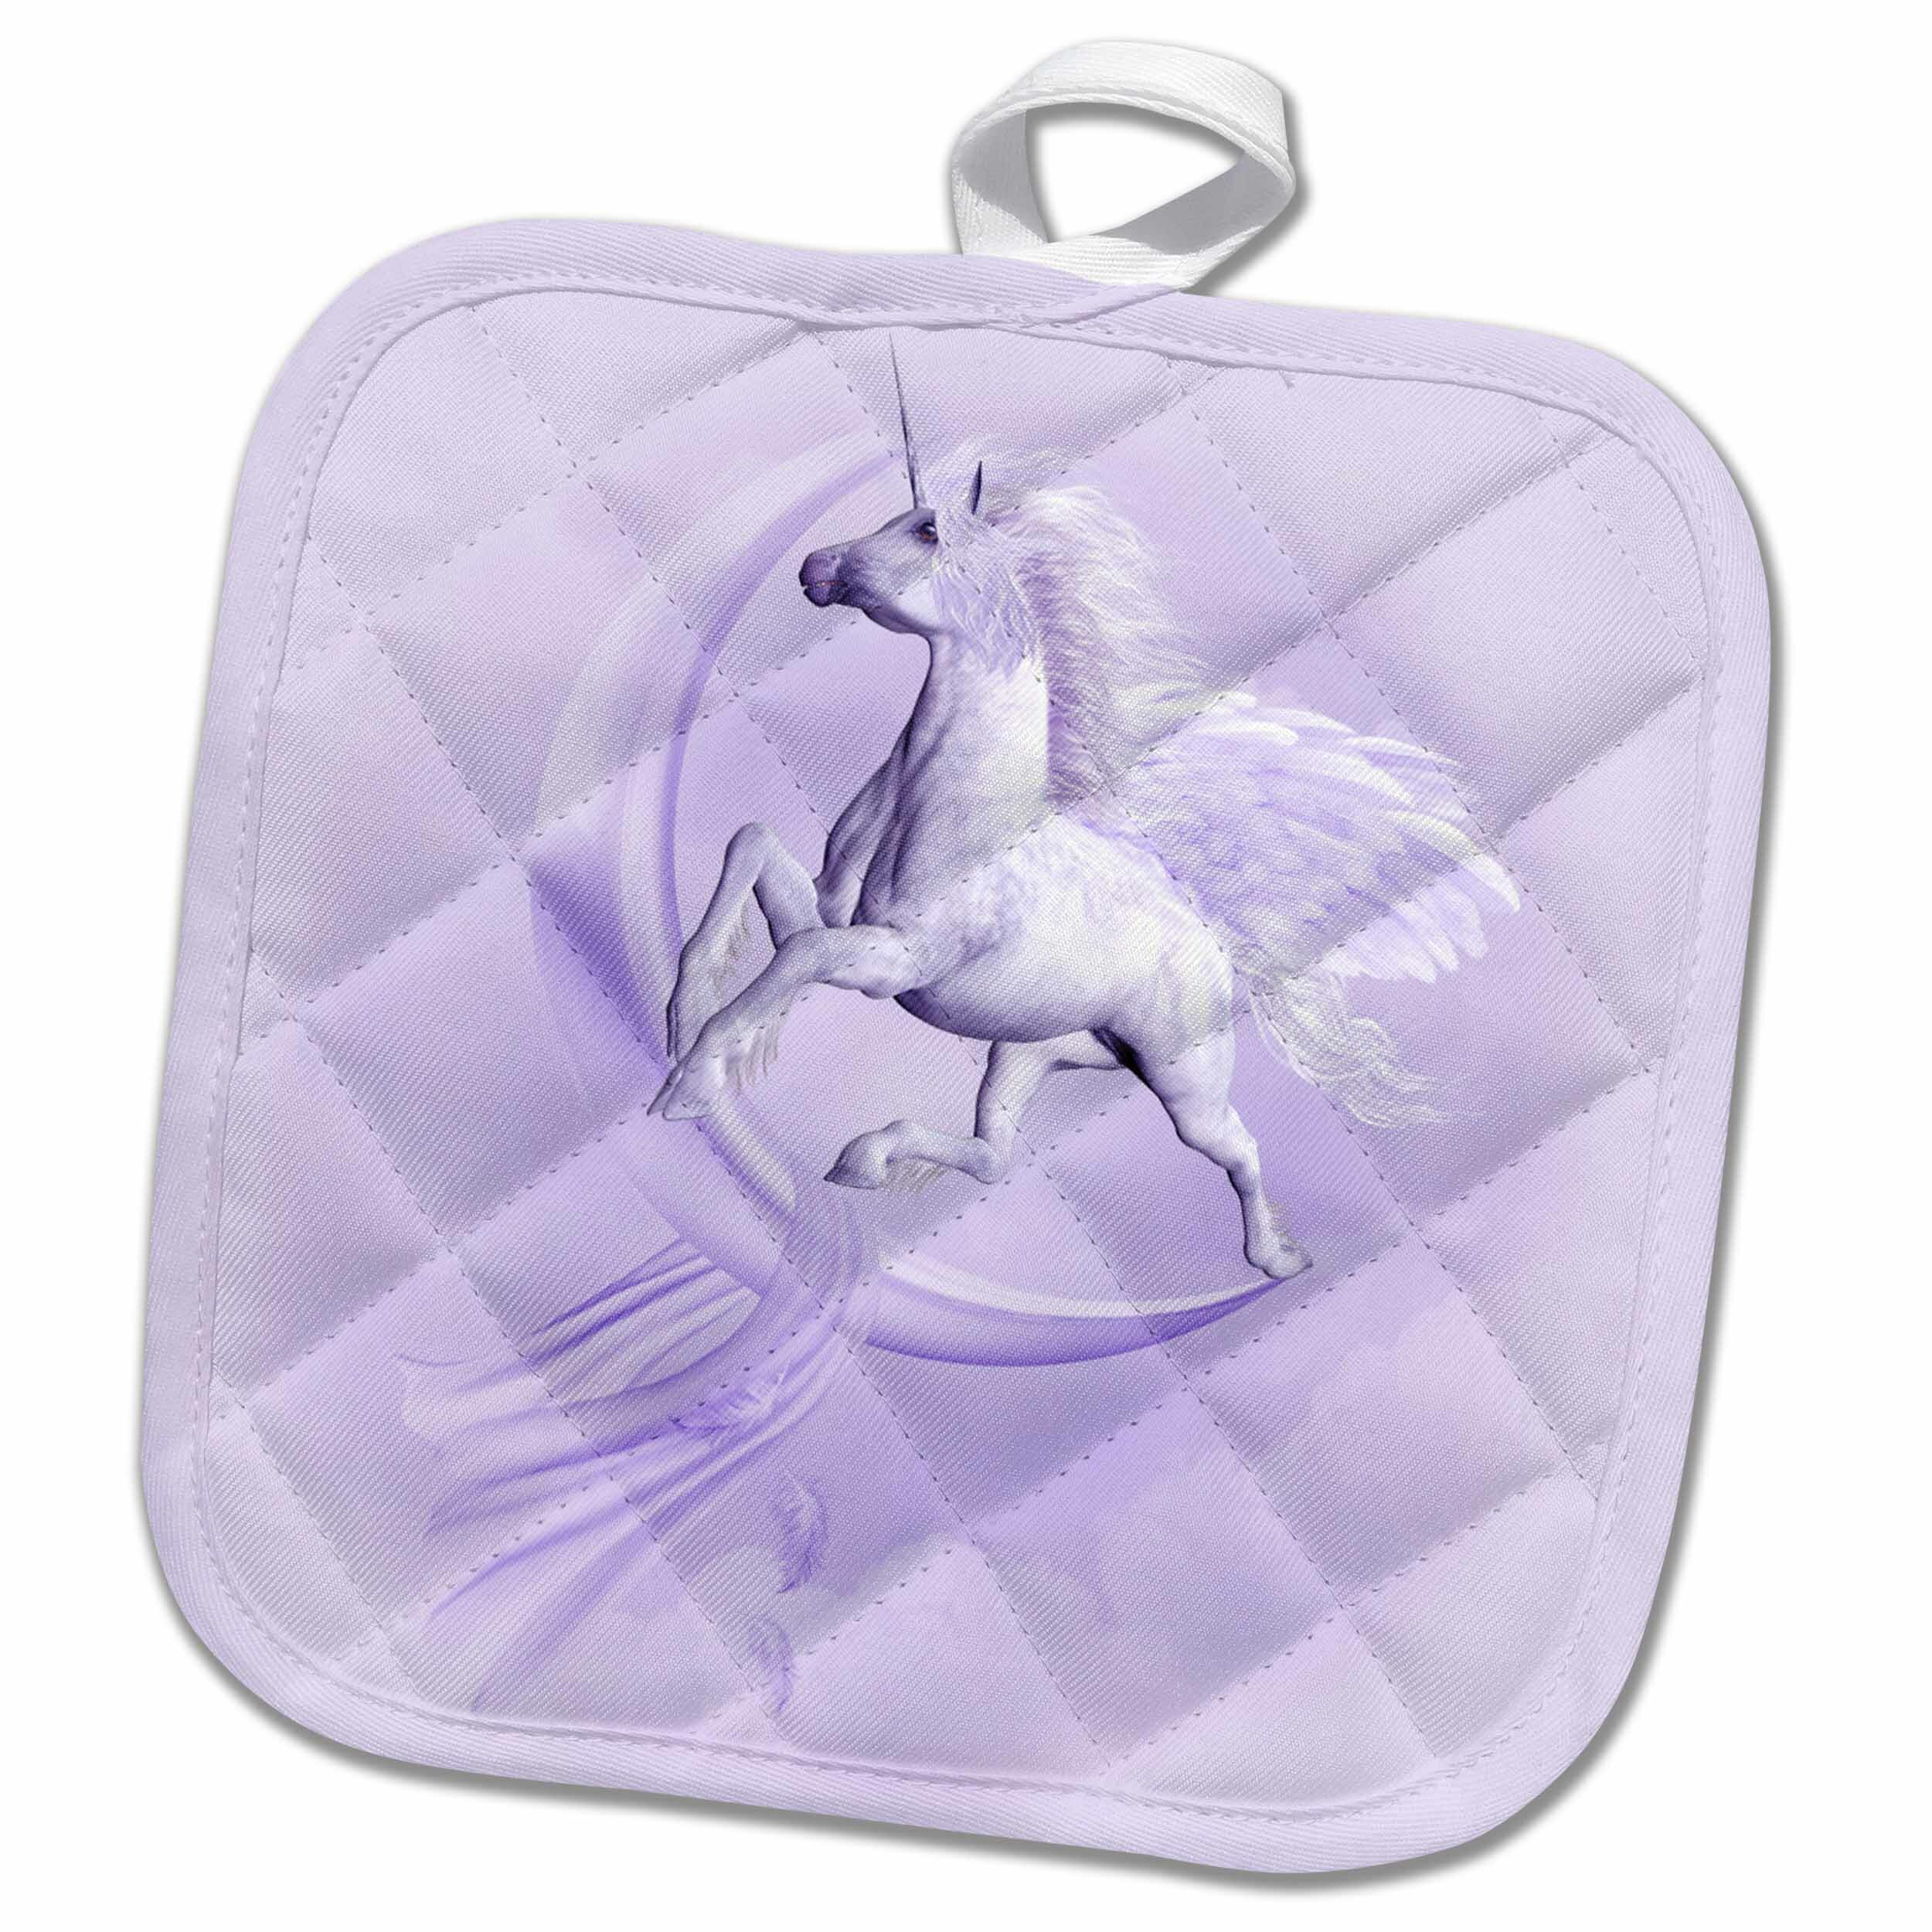 3drose A Flying Pegasus With A Moon And Clouds In The Background Potholder Wayfair